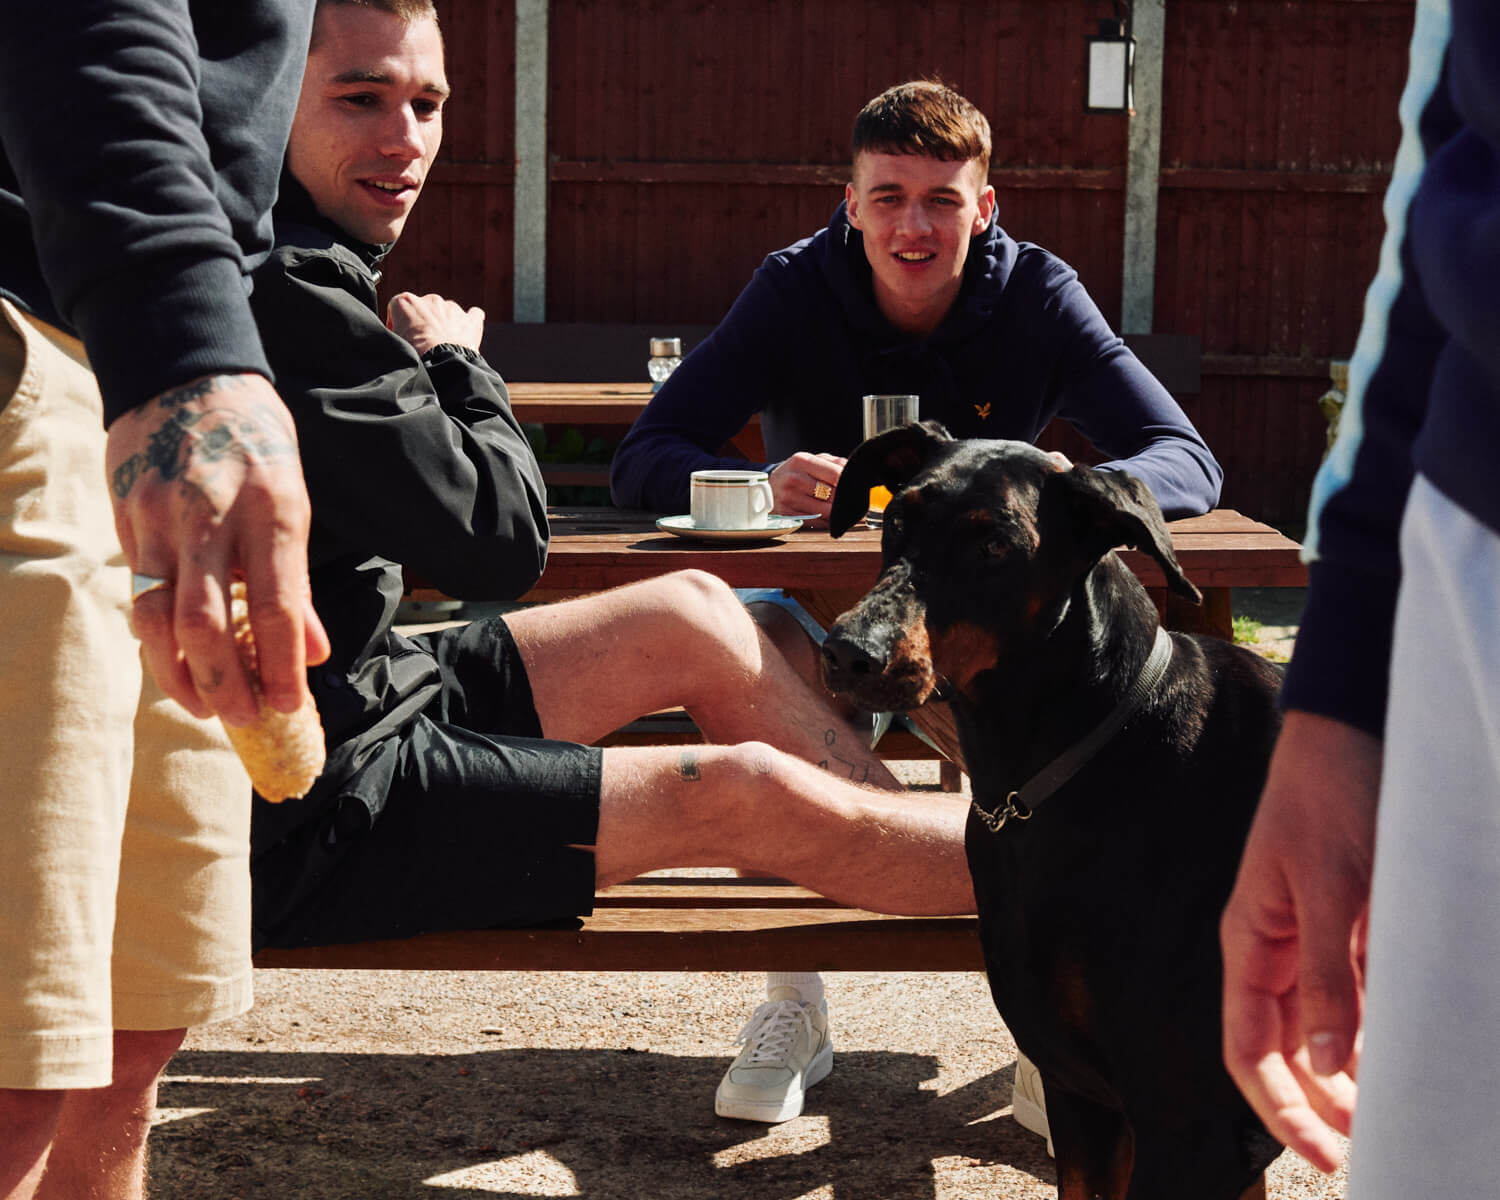 lads in summer sorted  Lyle and Scott feed dog in pub beer garden